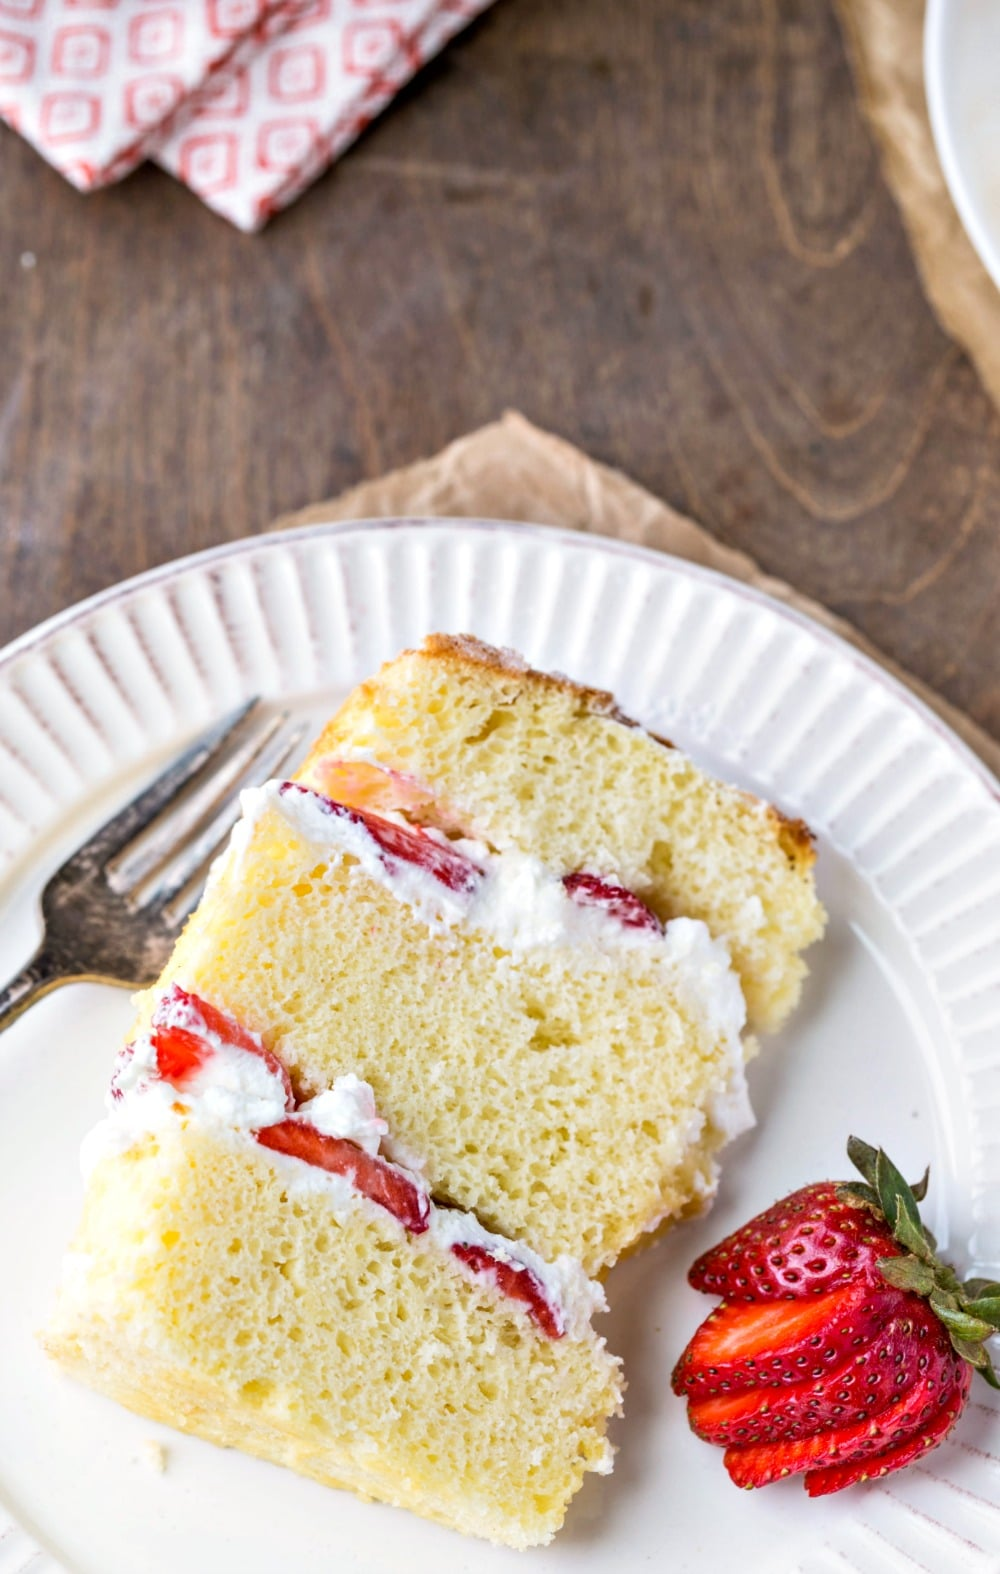 Slice of strawberry shortcake cake on a white plate next to a cut strawberry